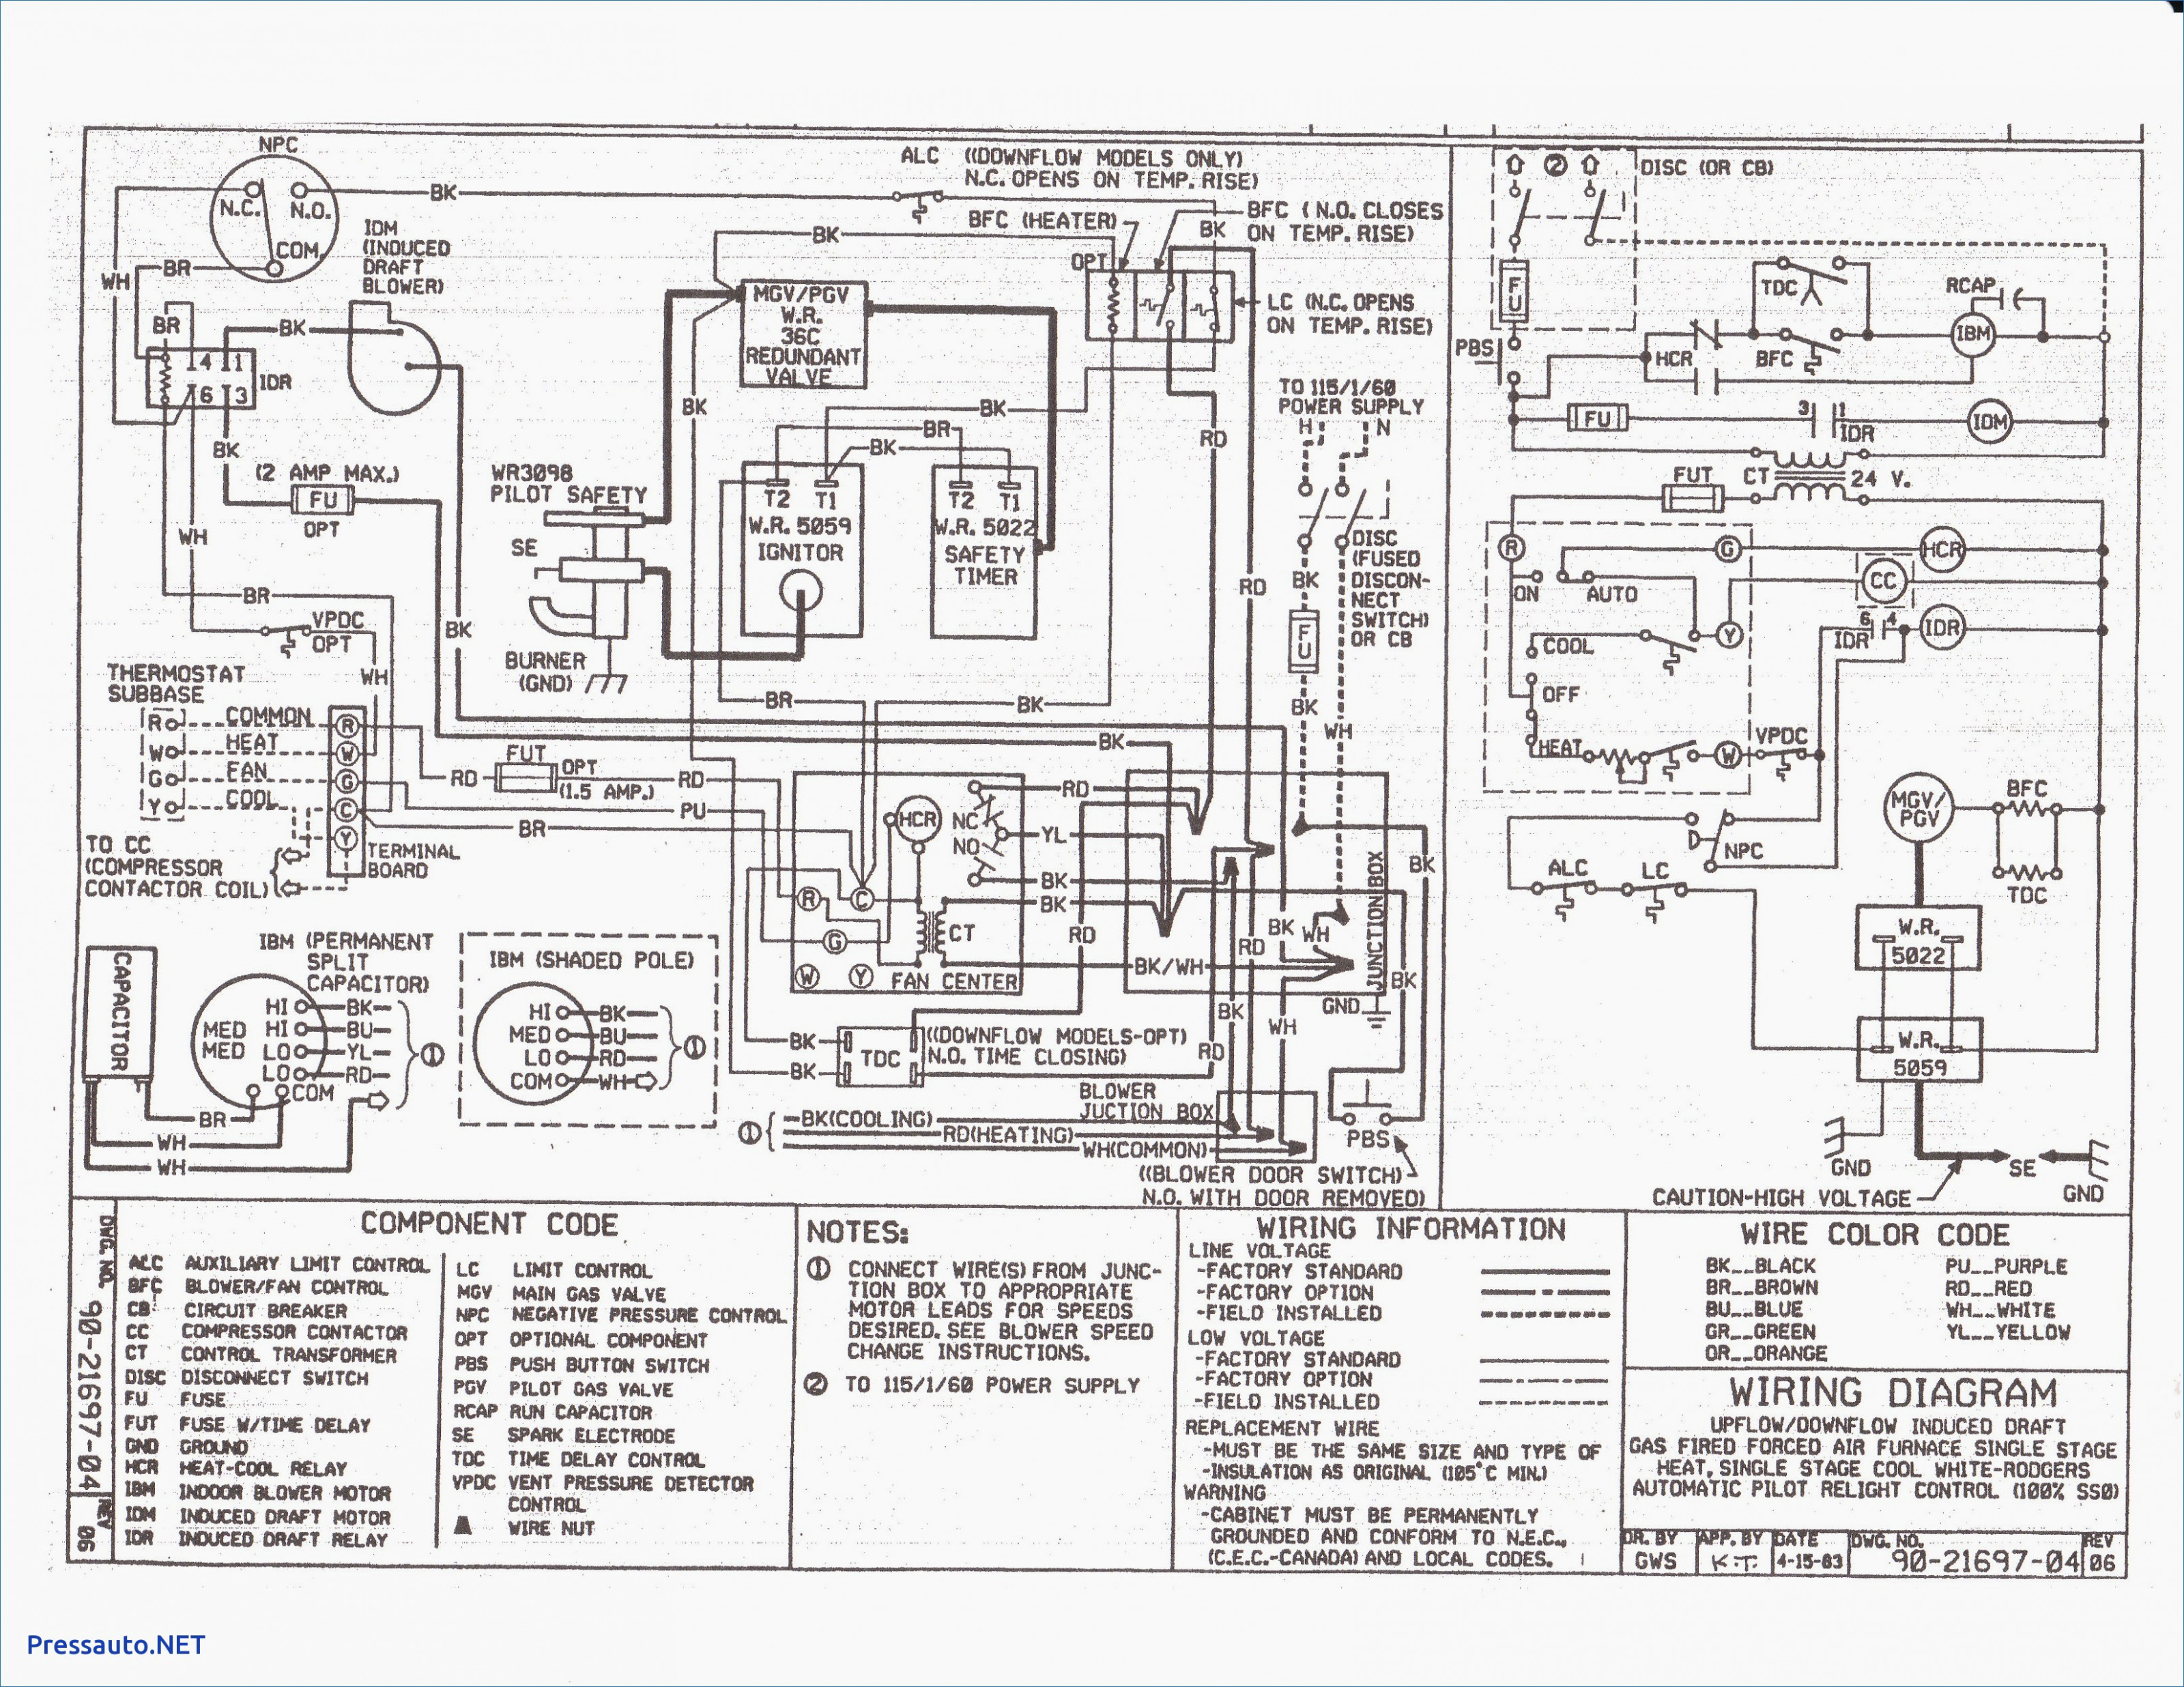 Wiring York Diagrams Furnace N2Ahd2Oao6C - Today Wiring Diagram - Coleman Mobile Home Electric Furnace Wiring Diagram